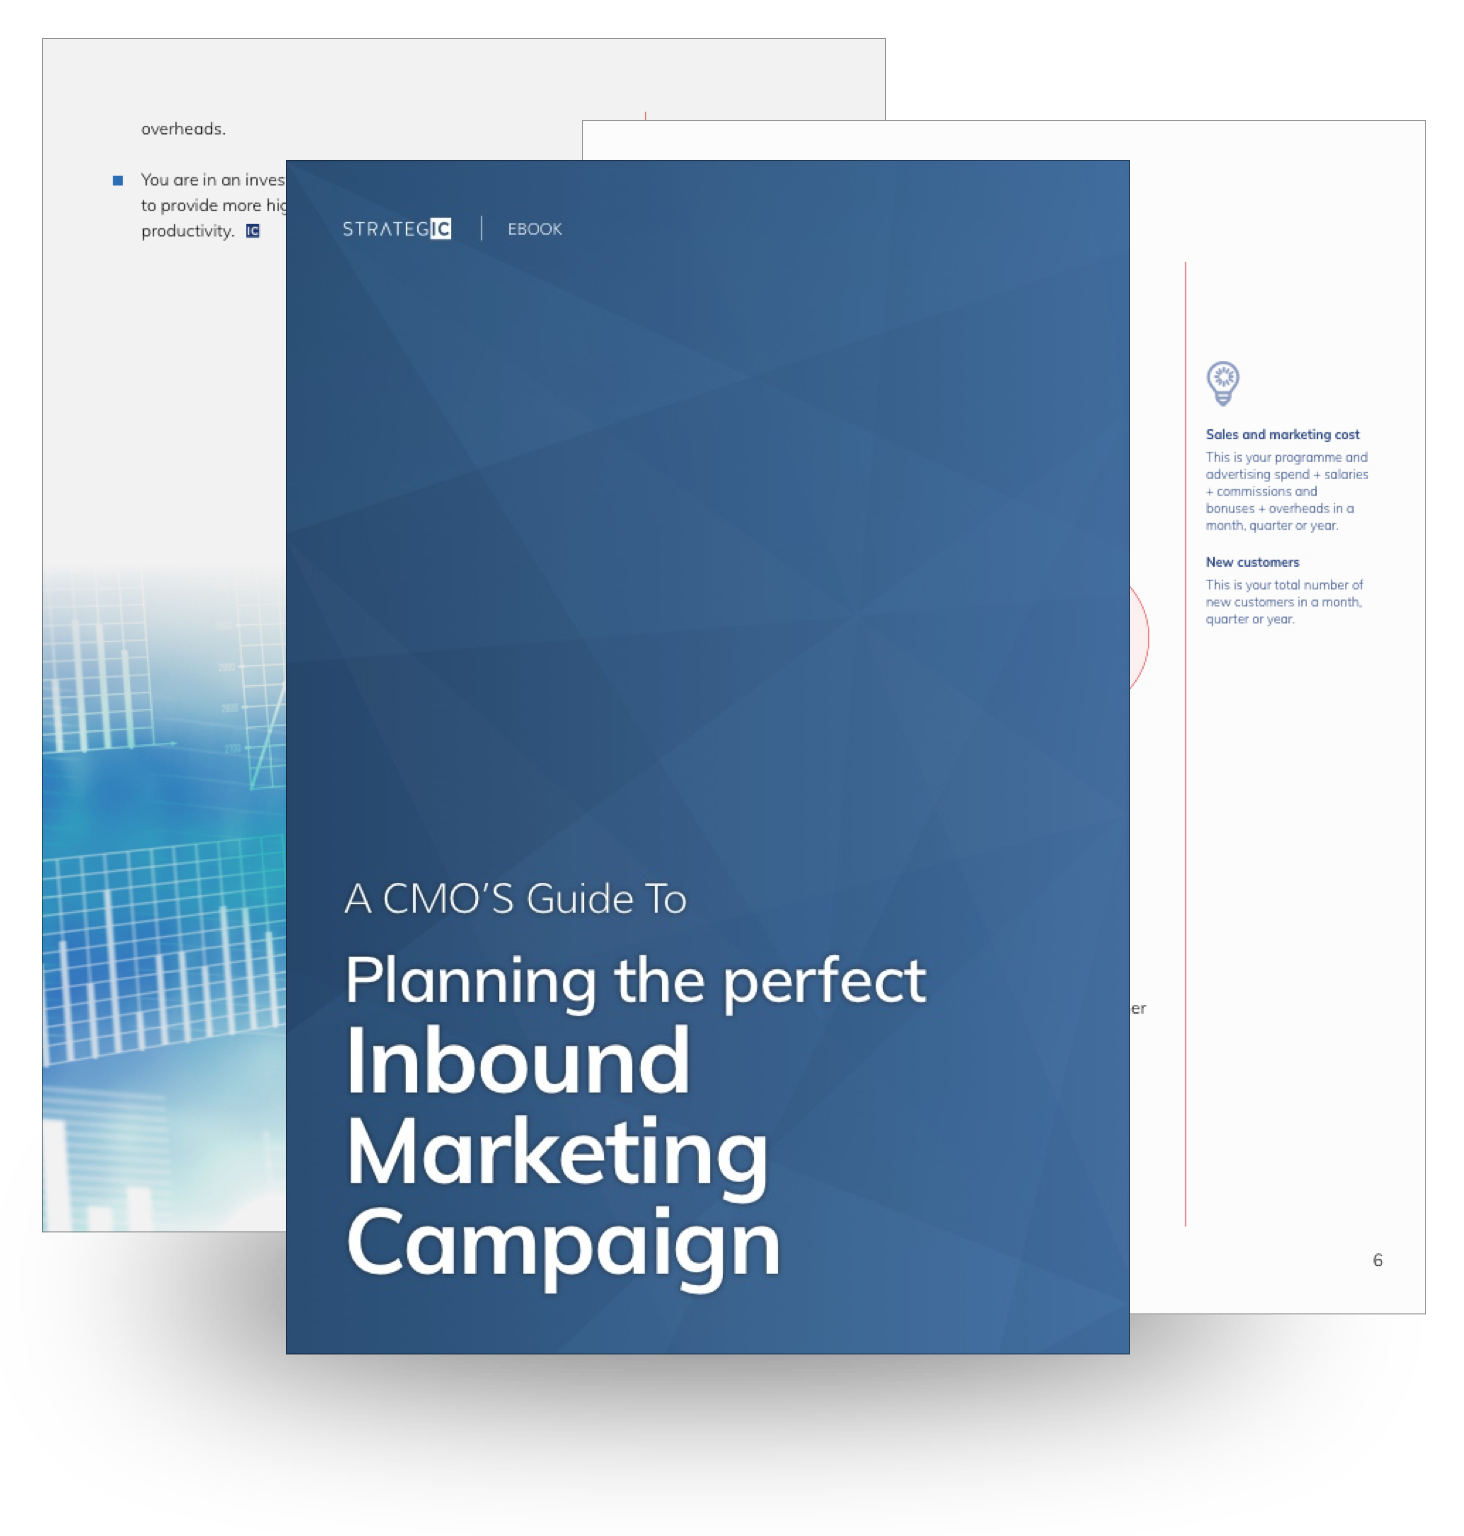 CMO's Guide to Planning the Perfect Inbound Marketing Campaign